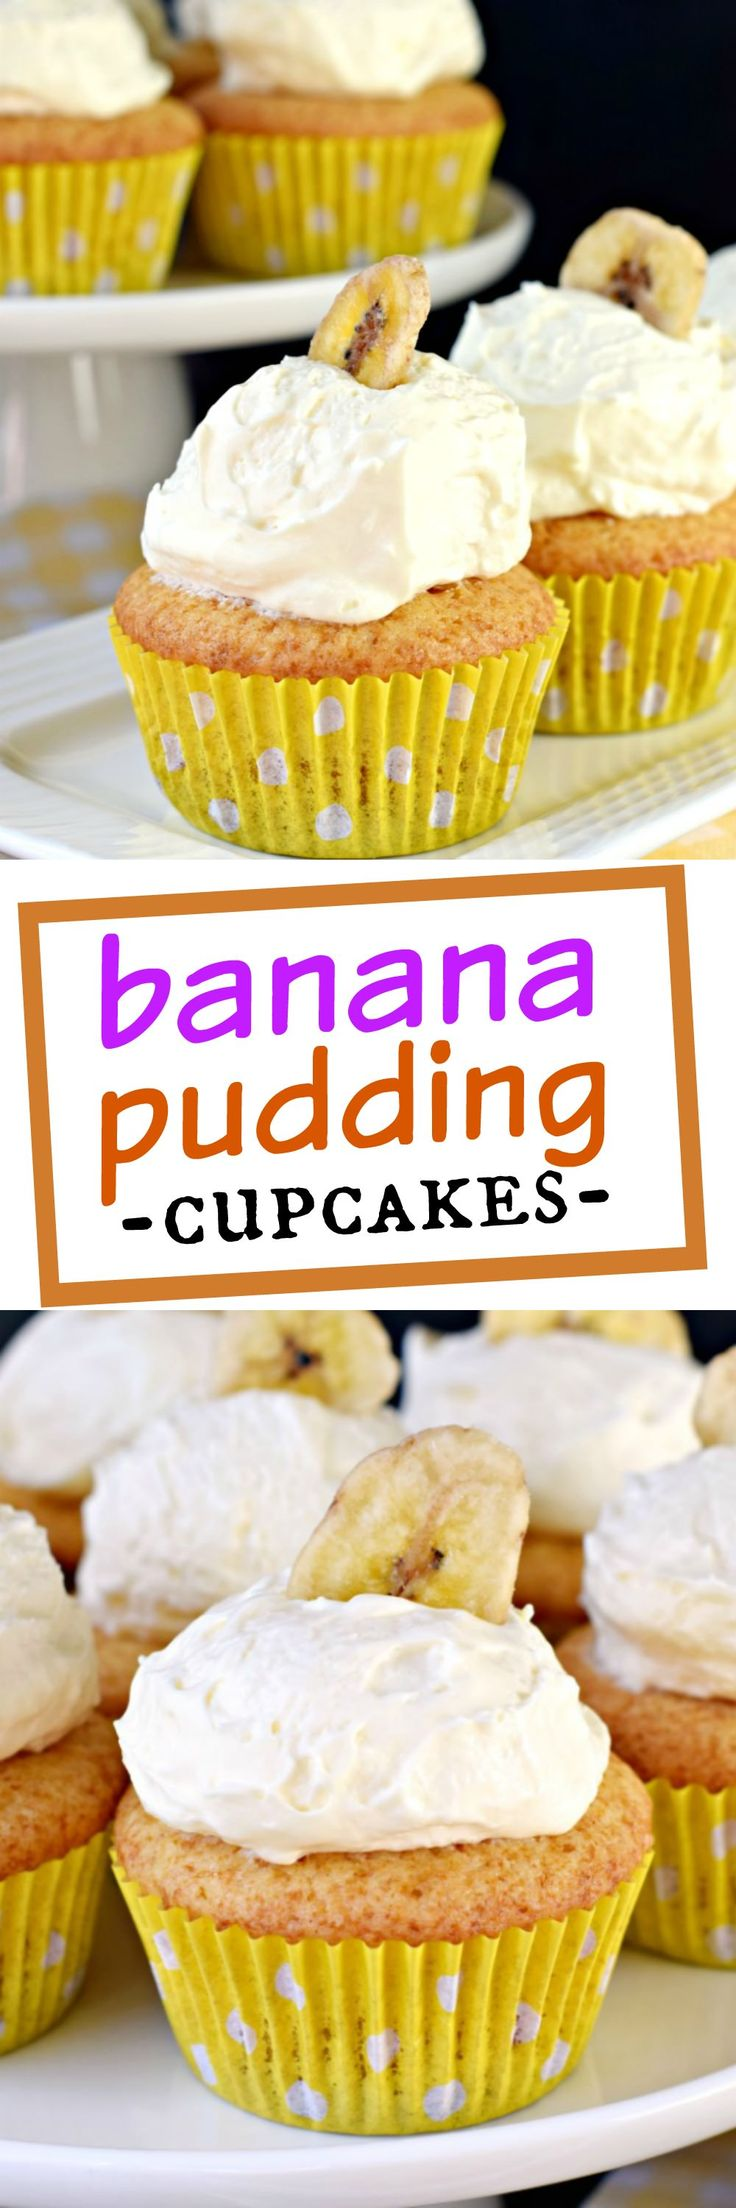 Crazy moist and fluffy, these Banana Pudding Cupcakes are the perfect dessert!